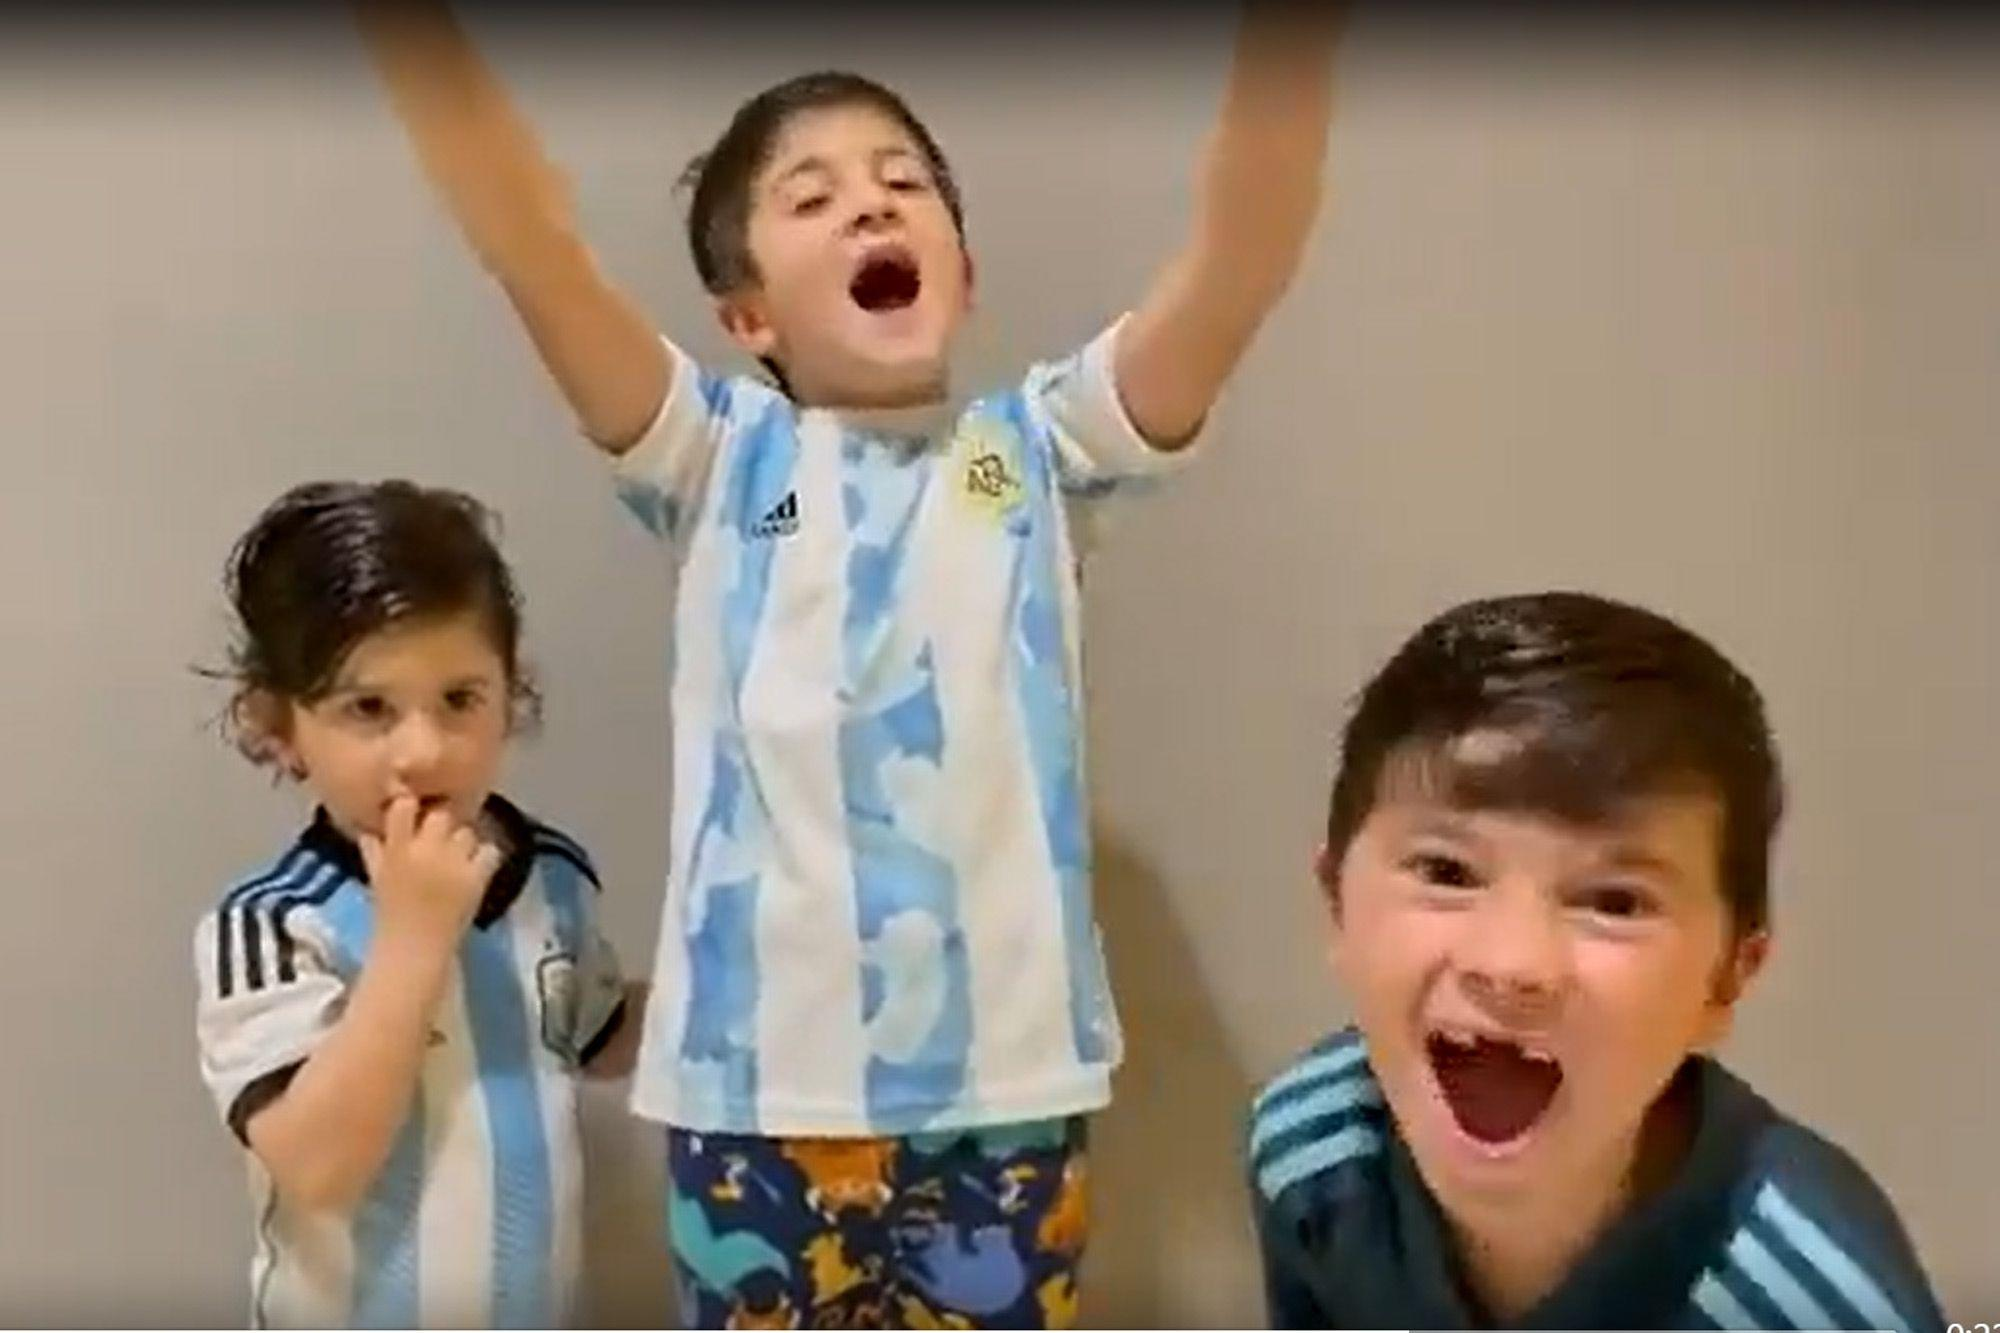 Video of Messi's children in the ecstatic celebration of the title